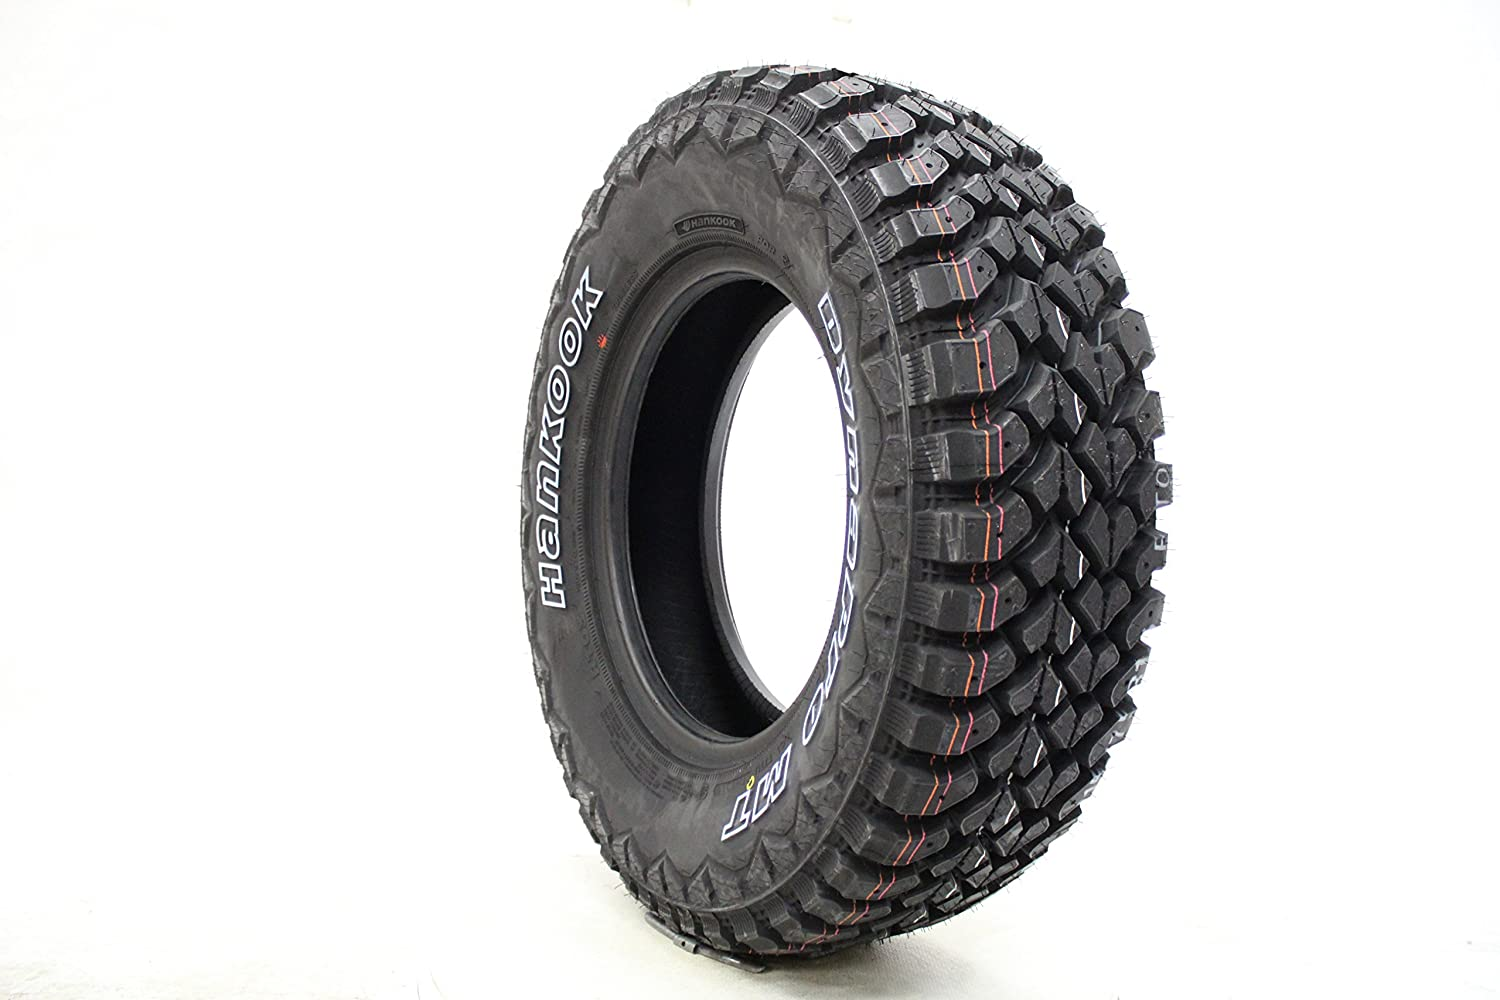 Hankook DynaPro MT RT03 Off-Road Tire - 31/1050R15 109QR 2000789